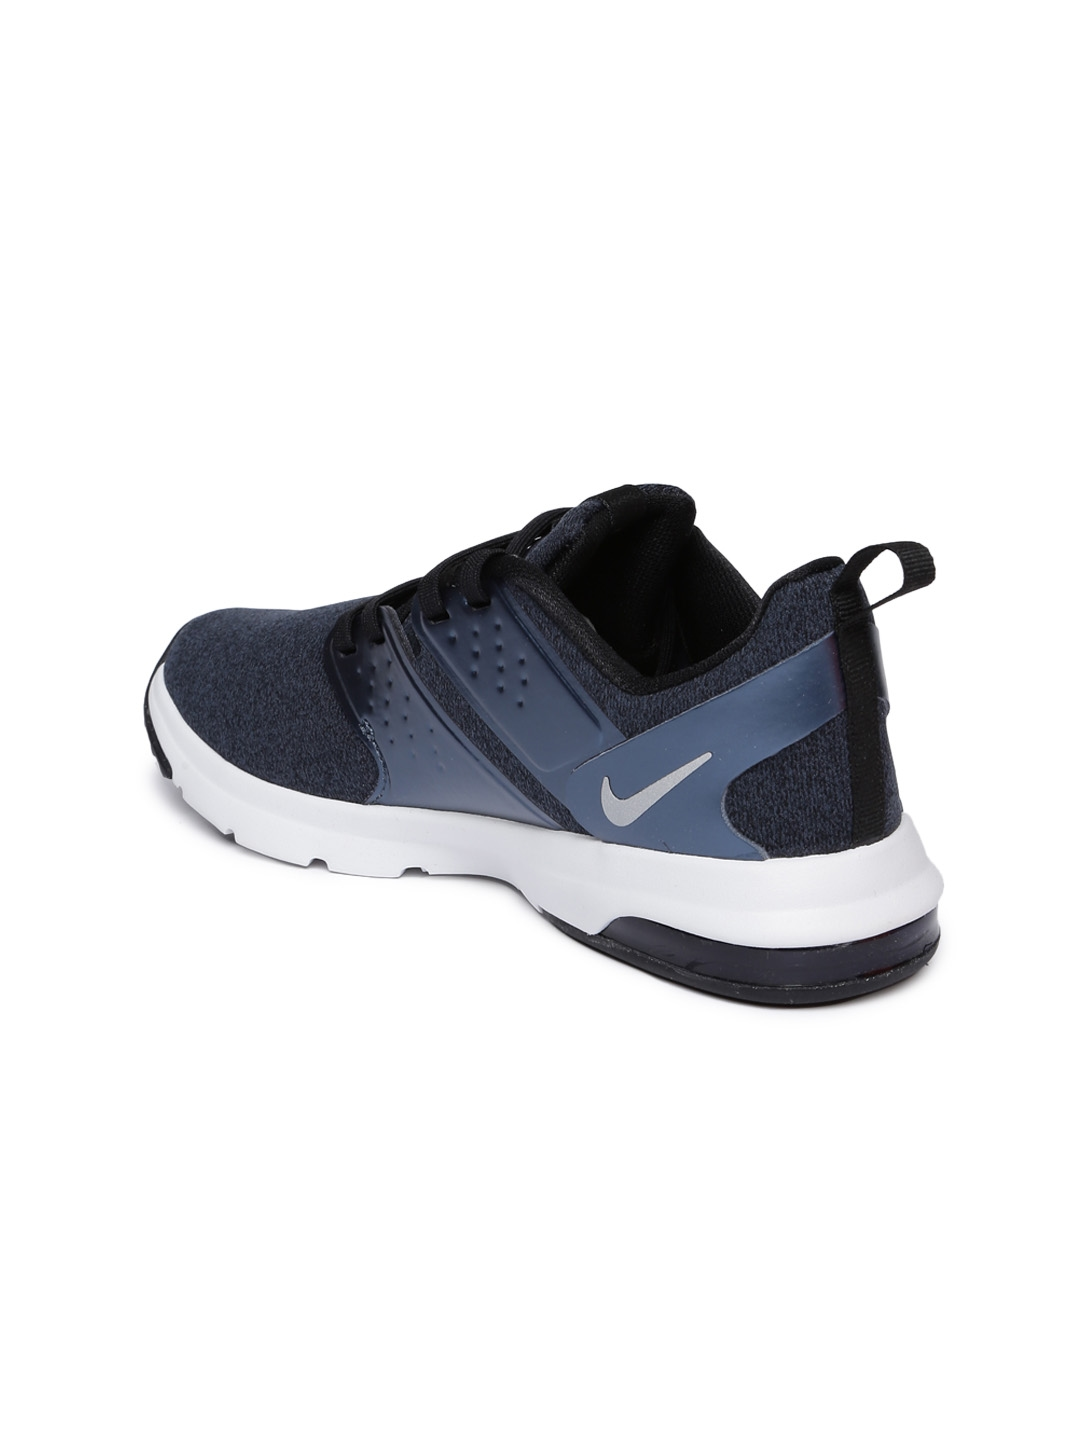 7c286a98a3ffc Buy Nike Women Black AIR BELLA TR PRM Training Shoes - Sports Shoes ...